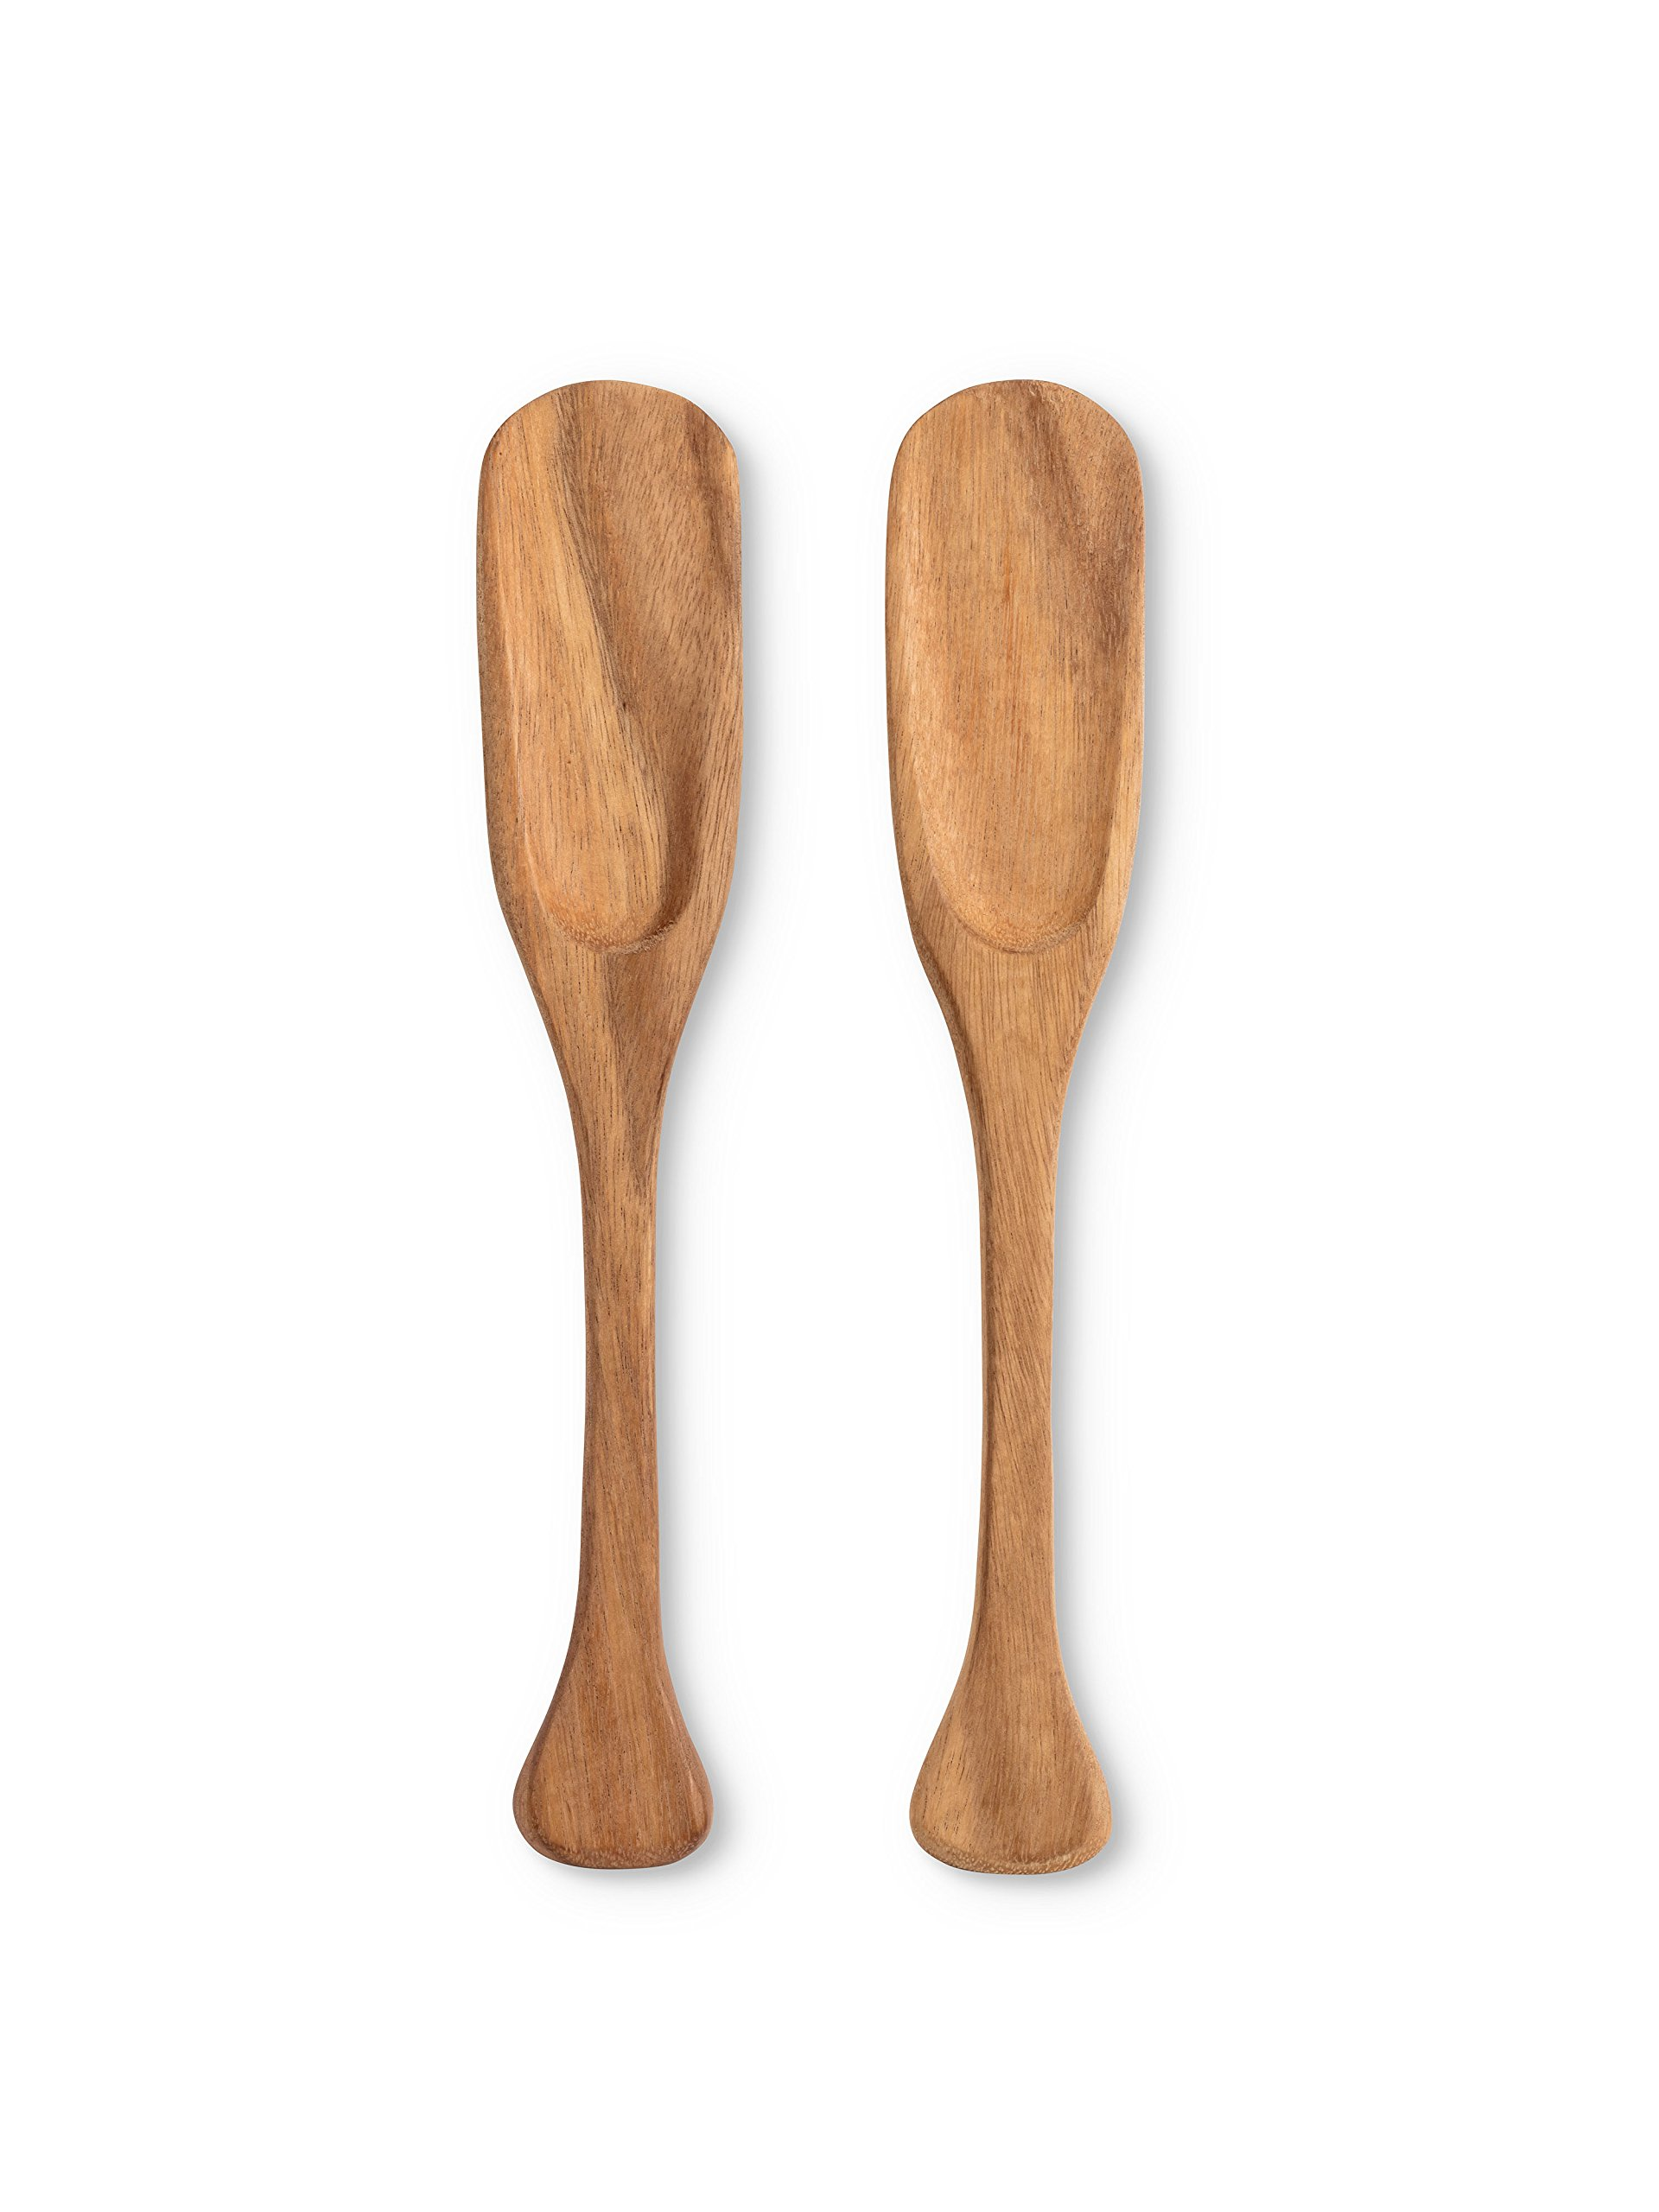 Abbott Collection 75-WOODWORK/15 Long paddle servers 14 inches, Brown